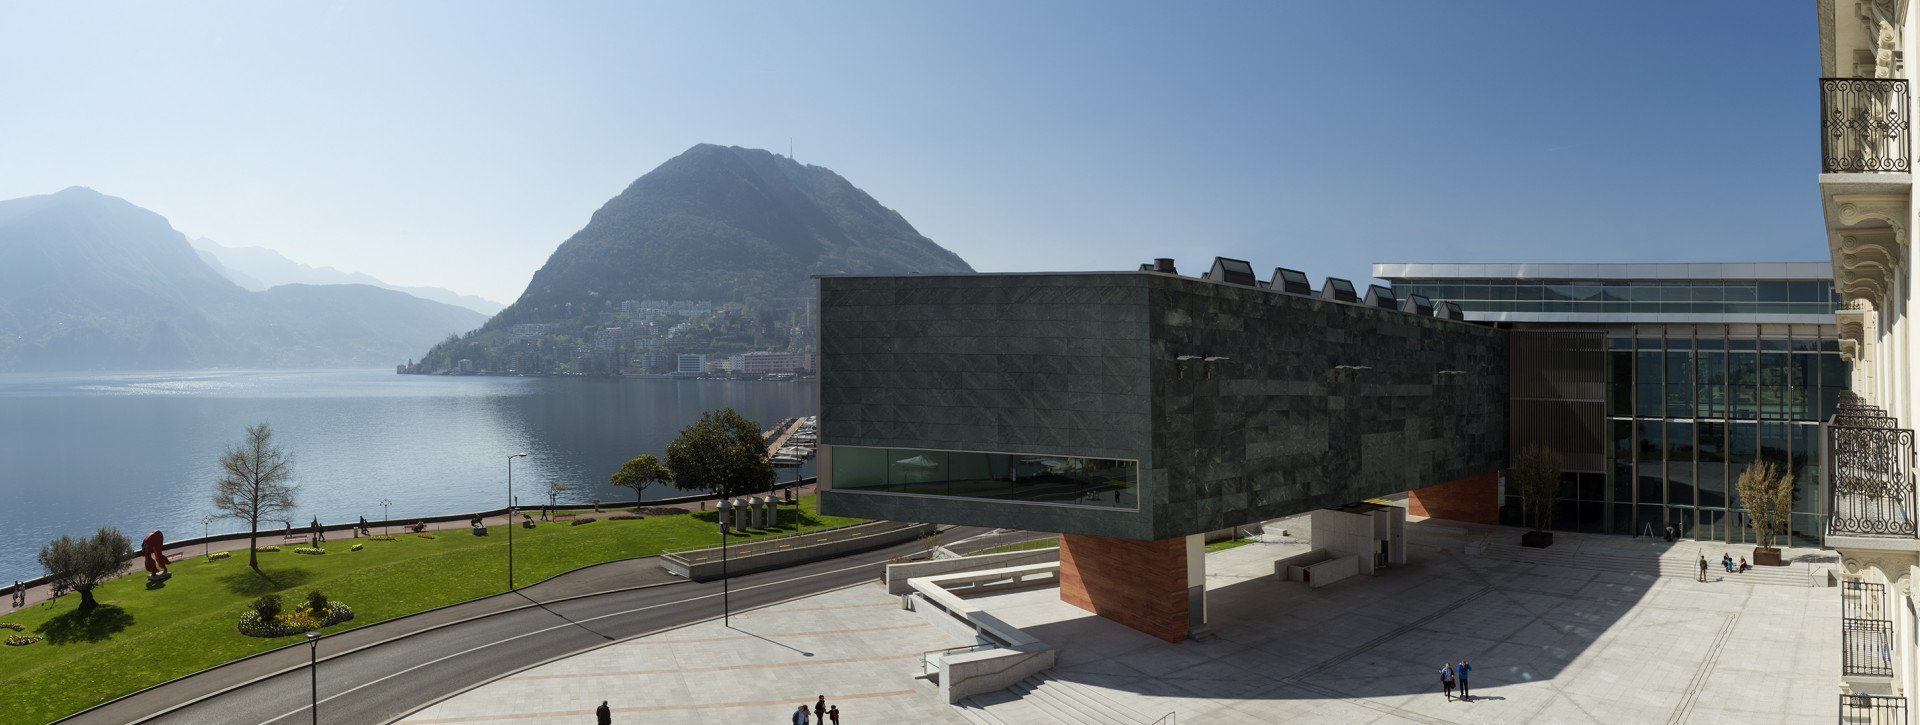 Panorama of the Lugano Arte e Cultura museum